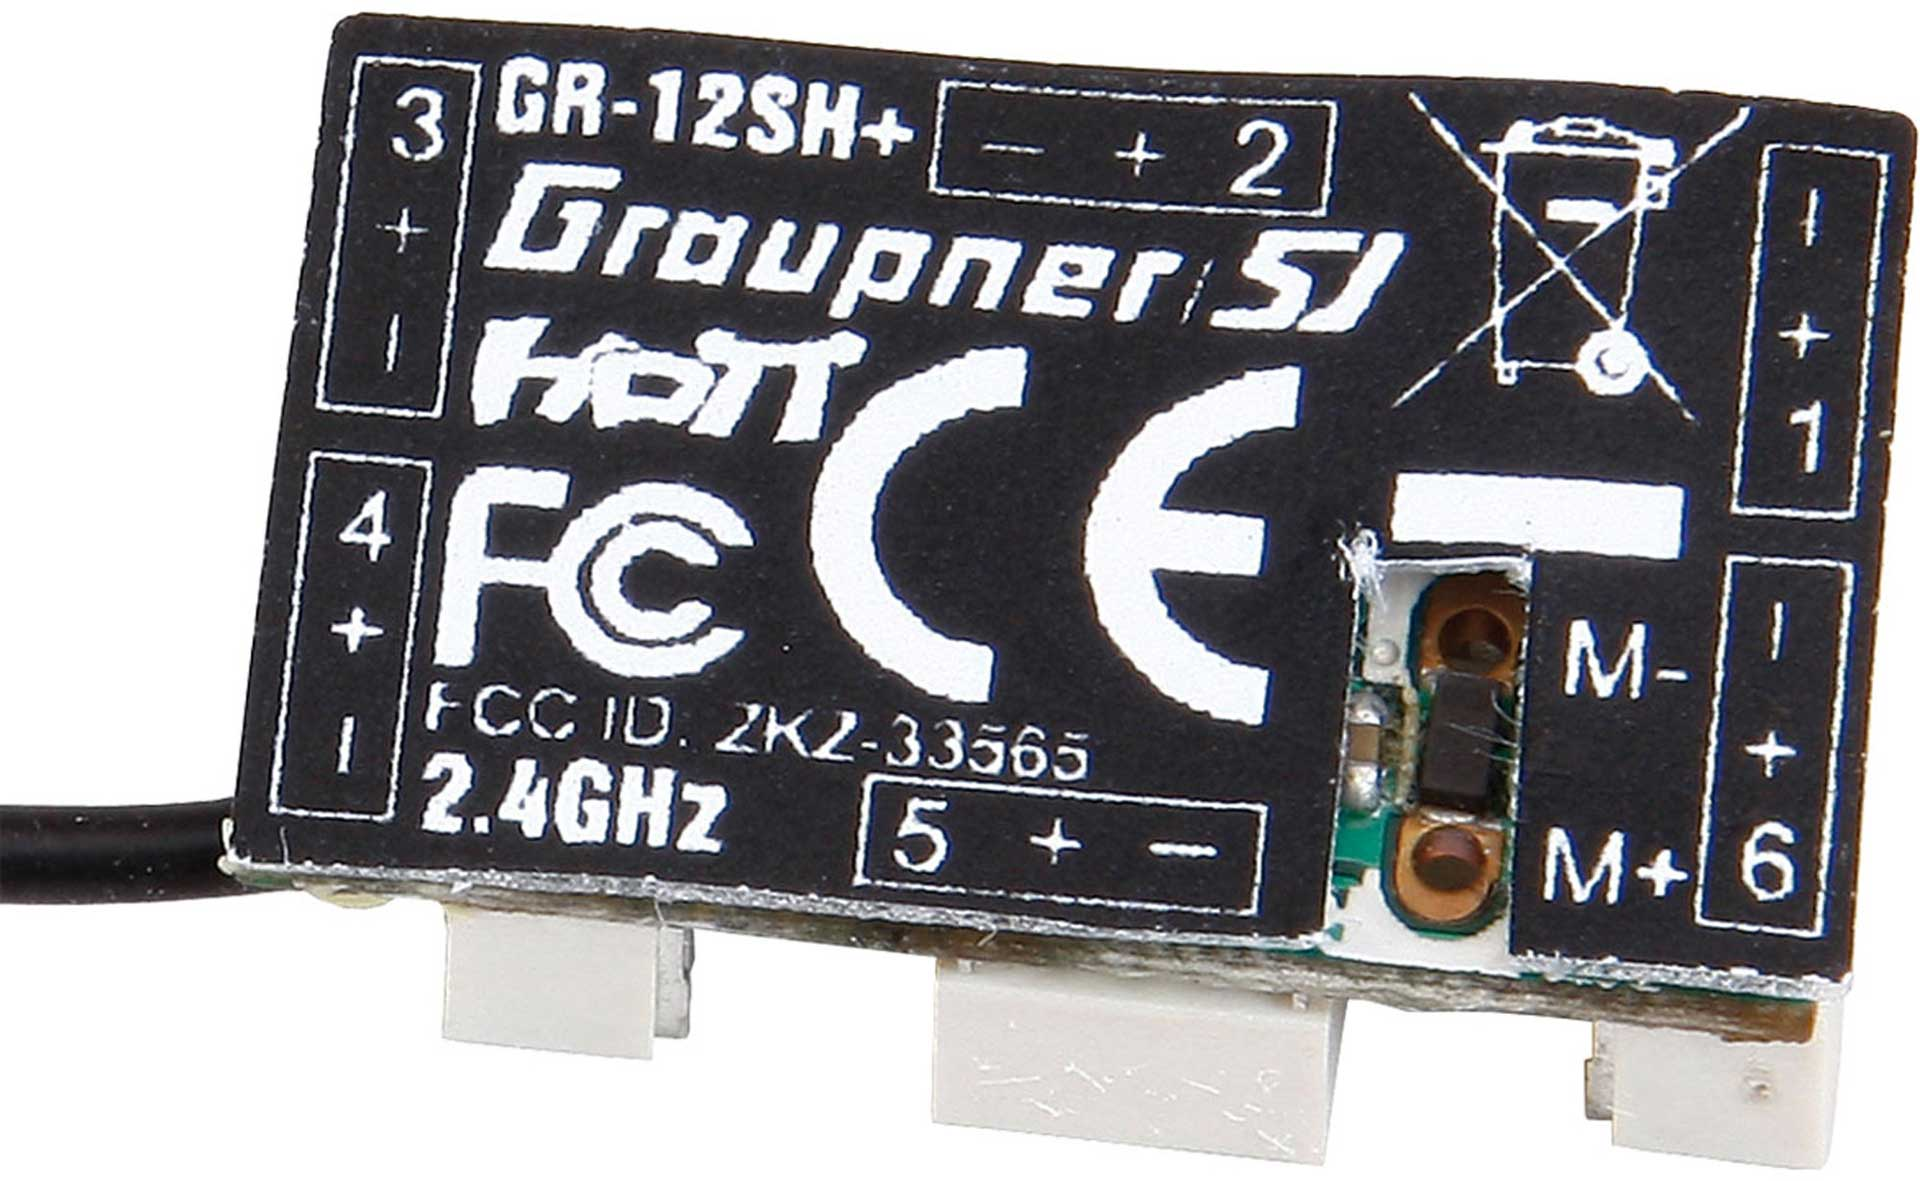 GRAUPNER GR-12SH+ 2.4GHZ HOT 6K RECEIVER